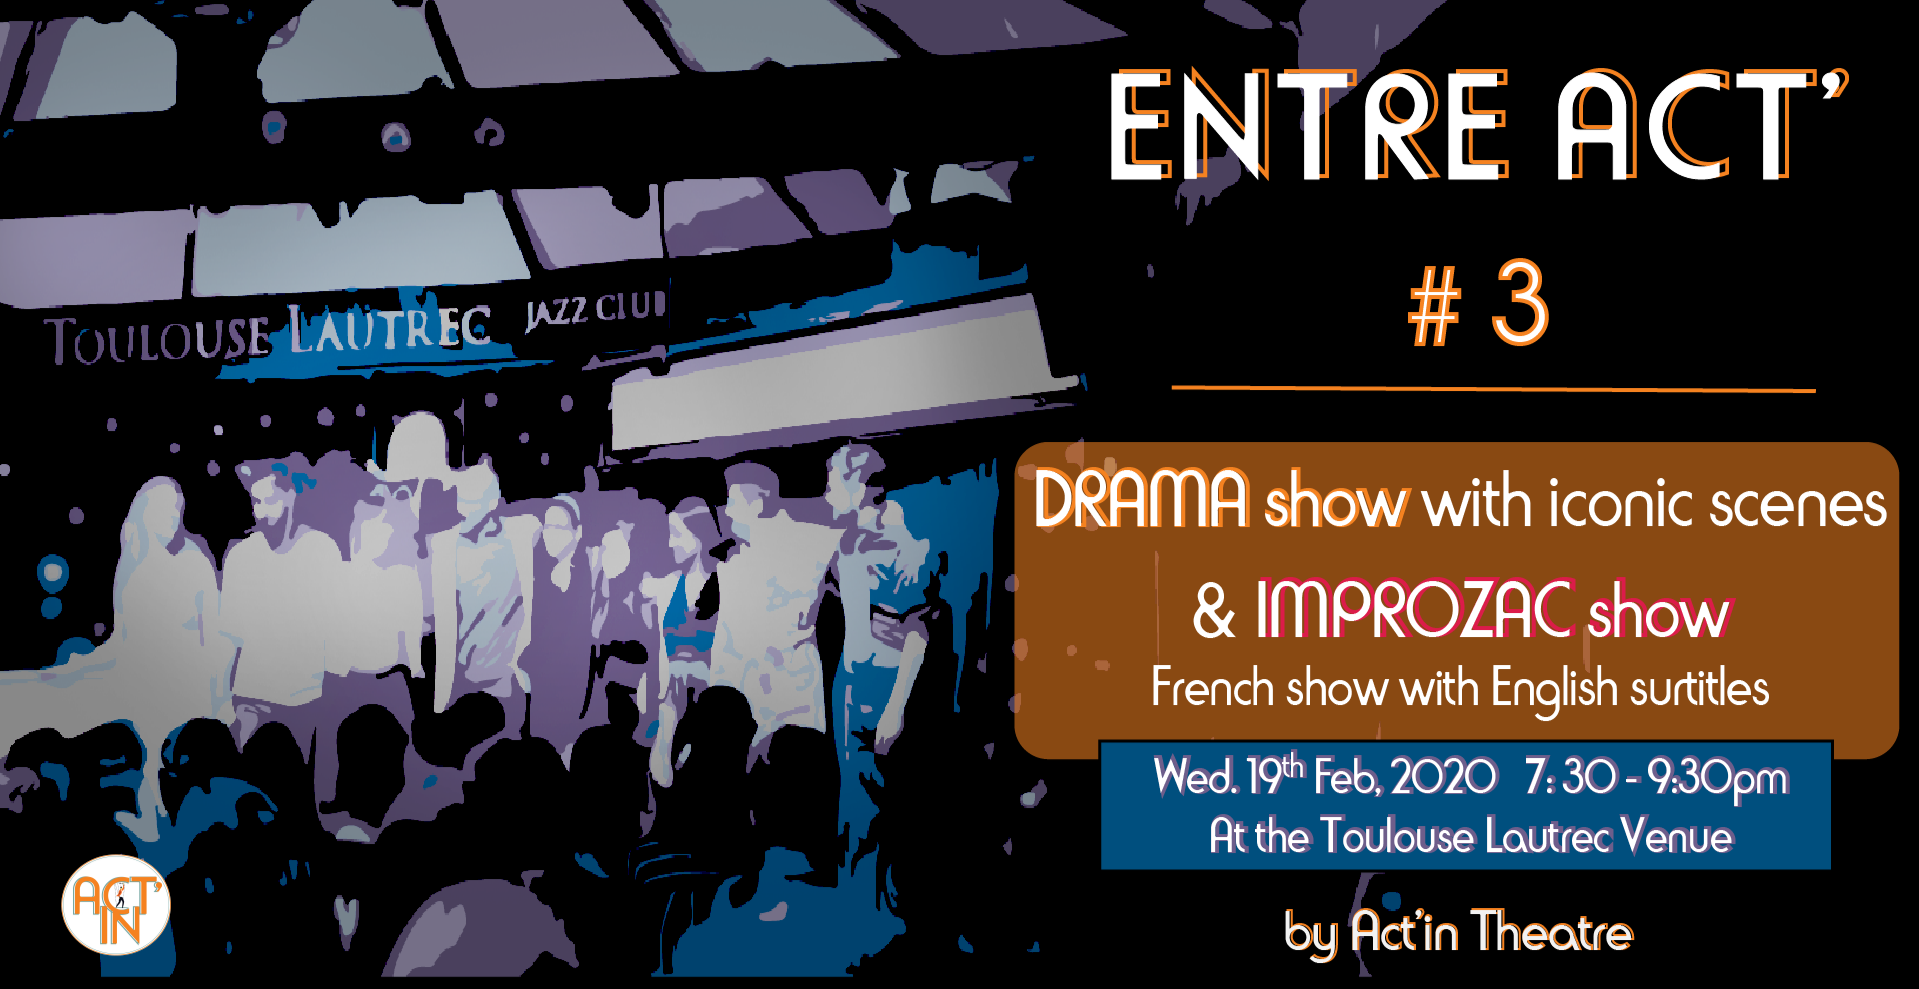 ACT'IN THEATRE PRESENTS ENTRE ACT' #3